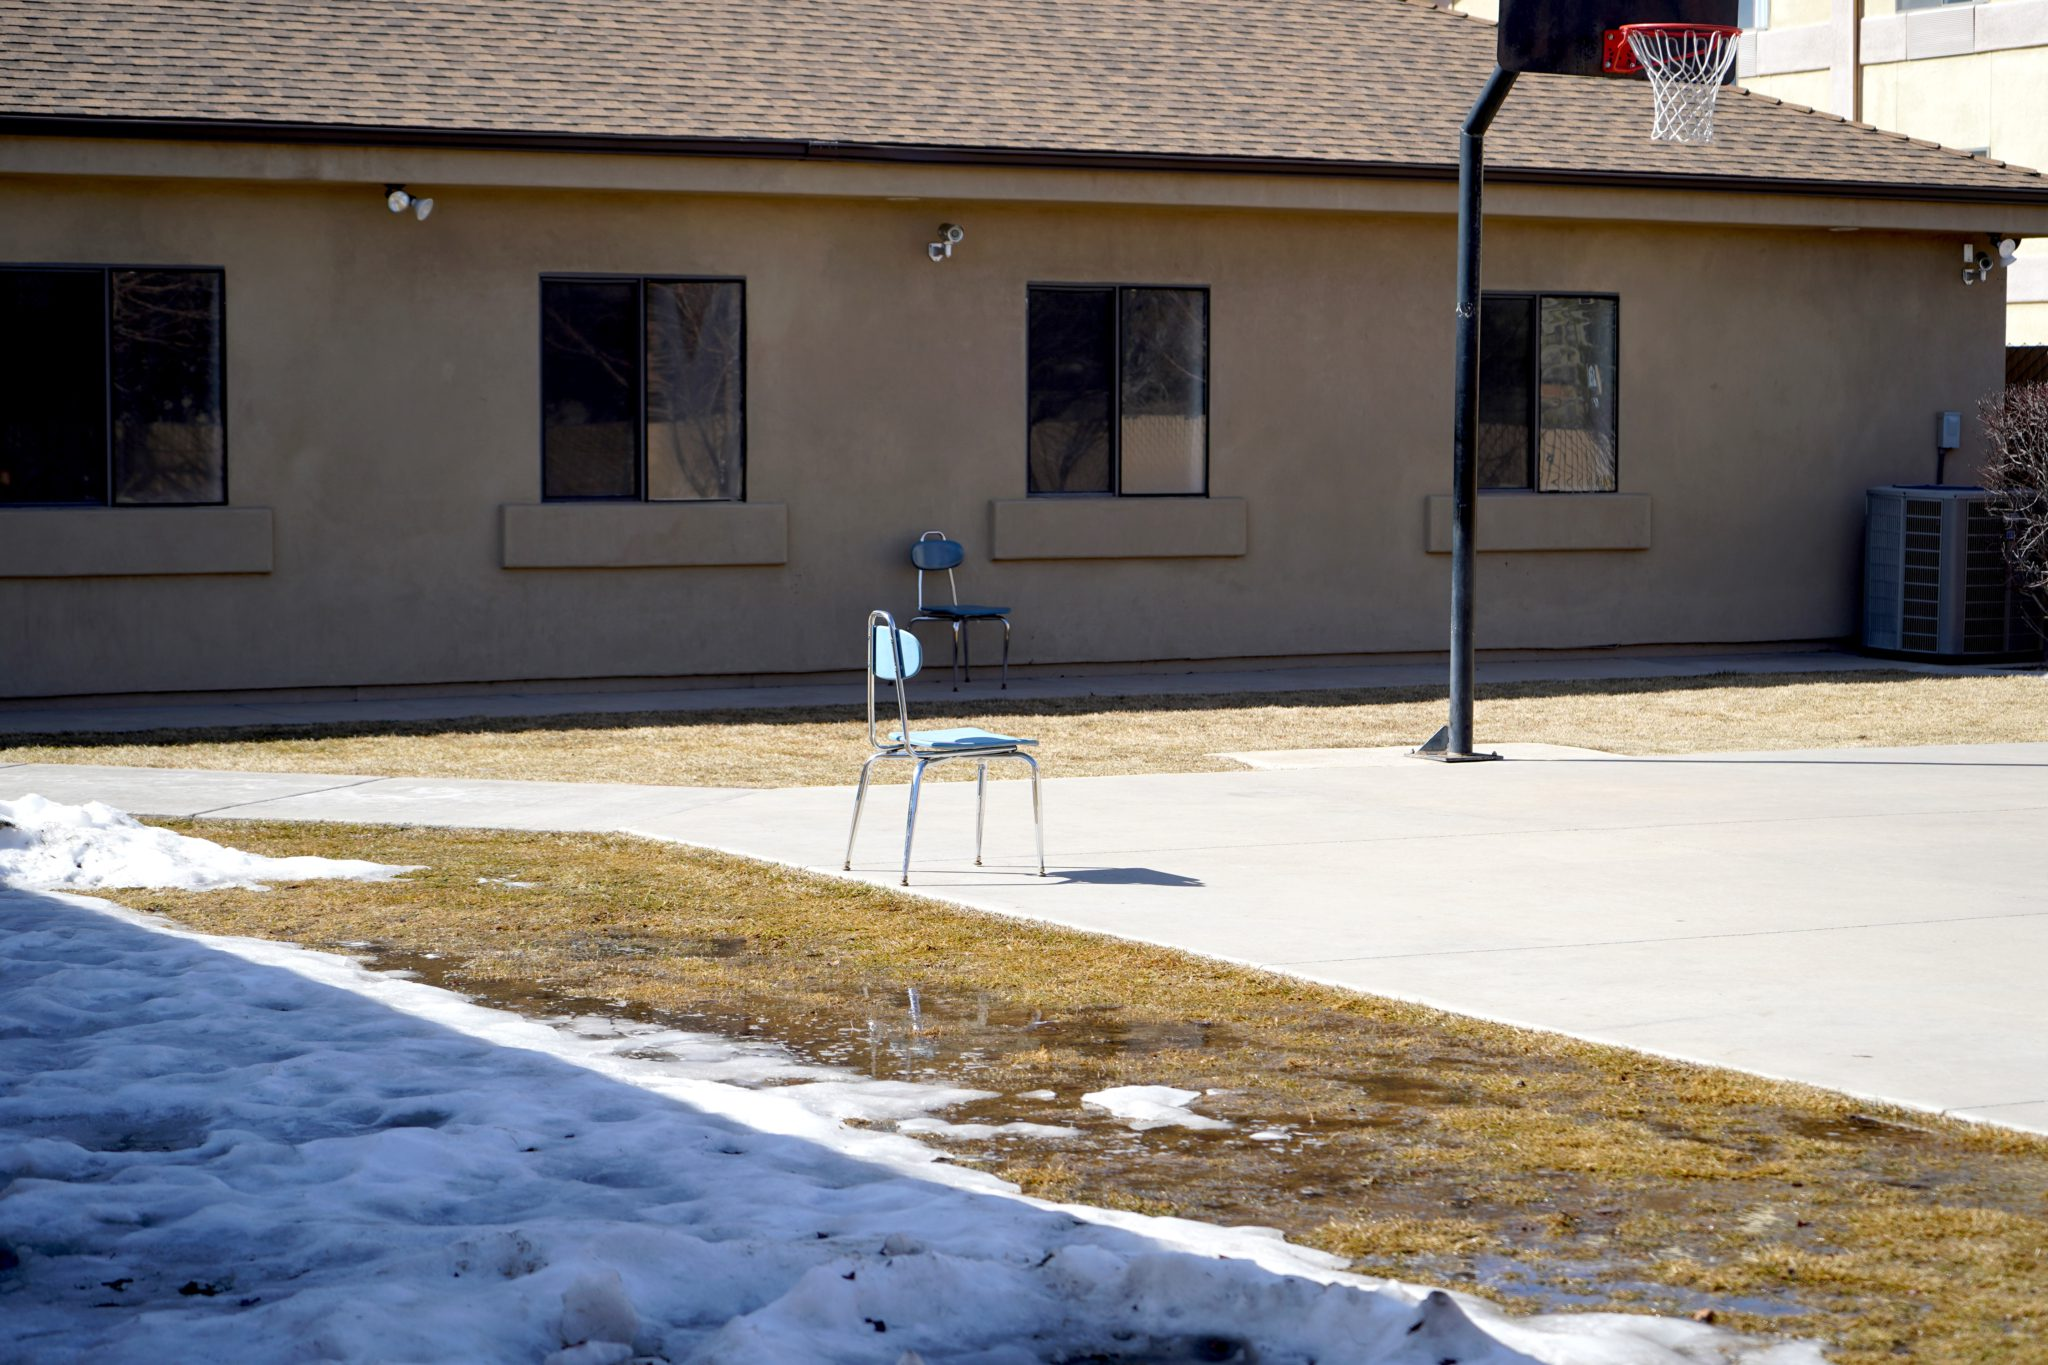 Lone chair in a basketball court area with snow